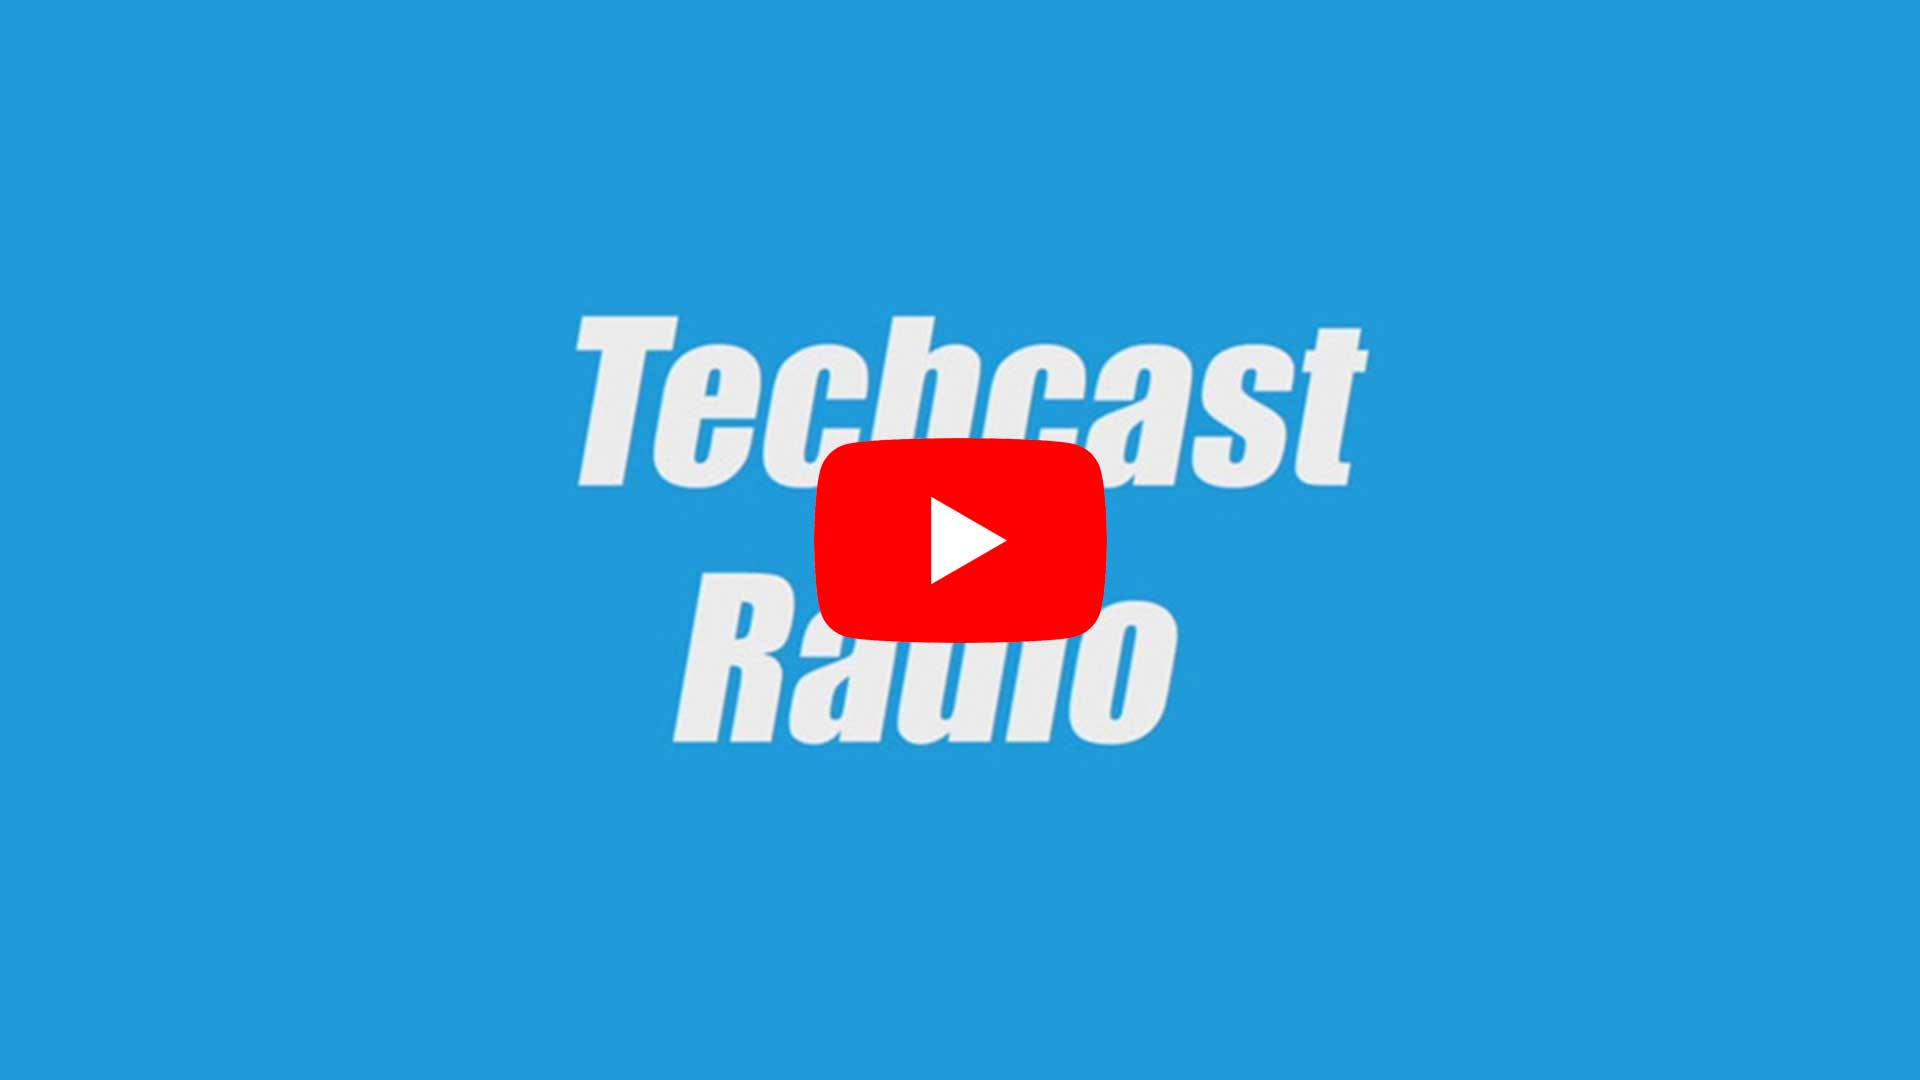 Techcast Radio